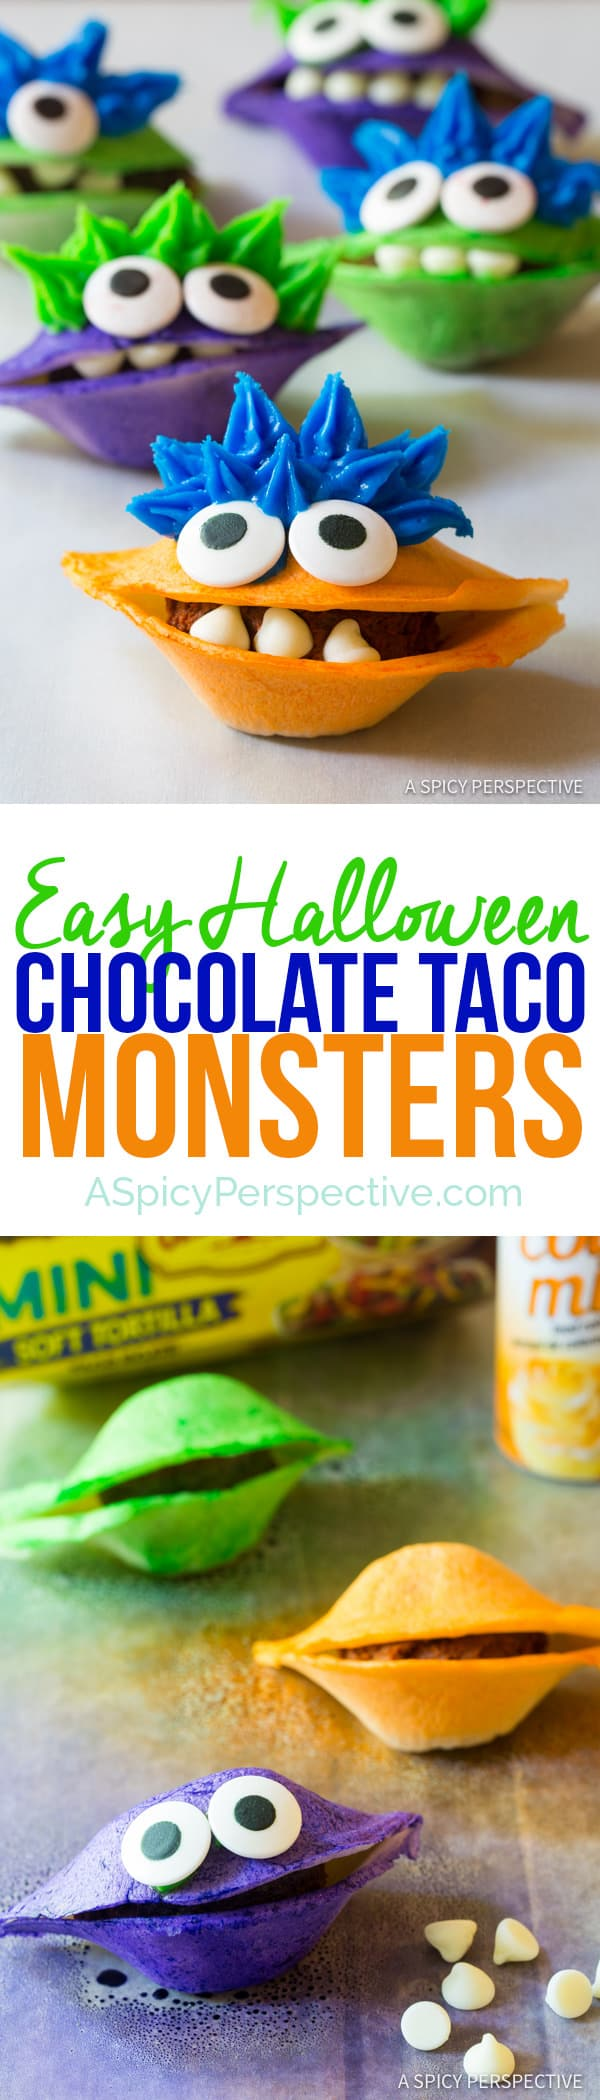 Easy Chocolate Taco Monsters for Halloween! | ASpicyPerspective.com